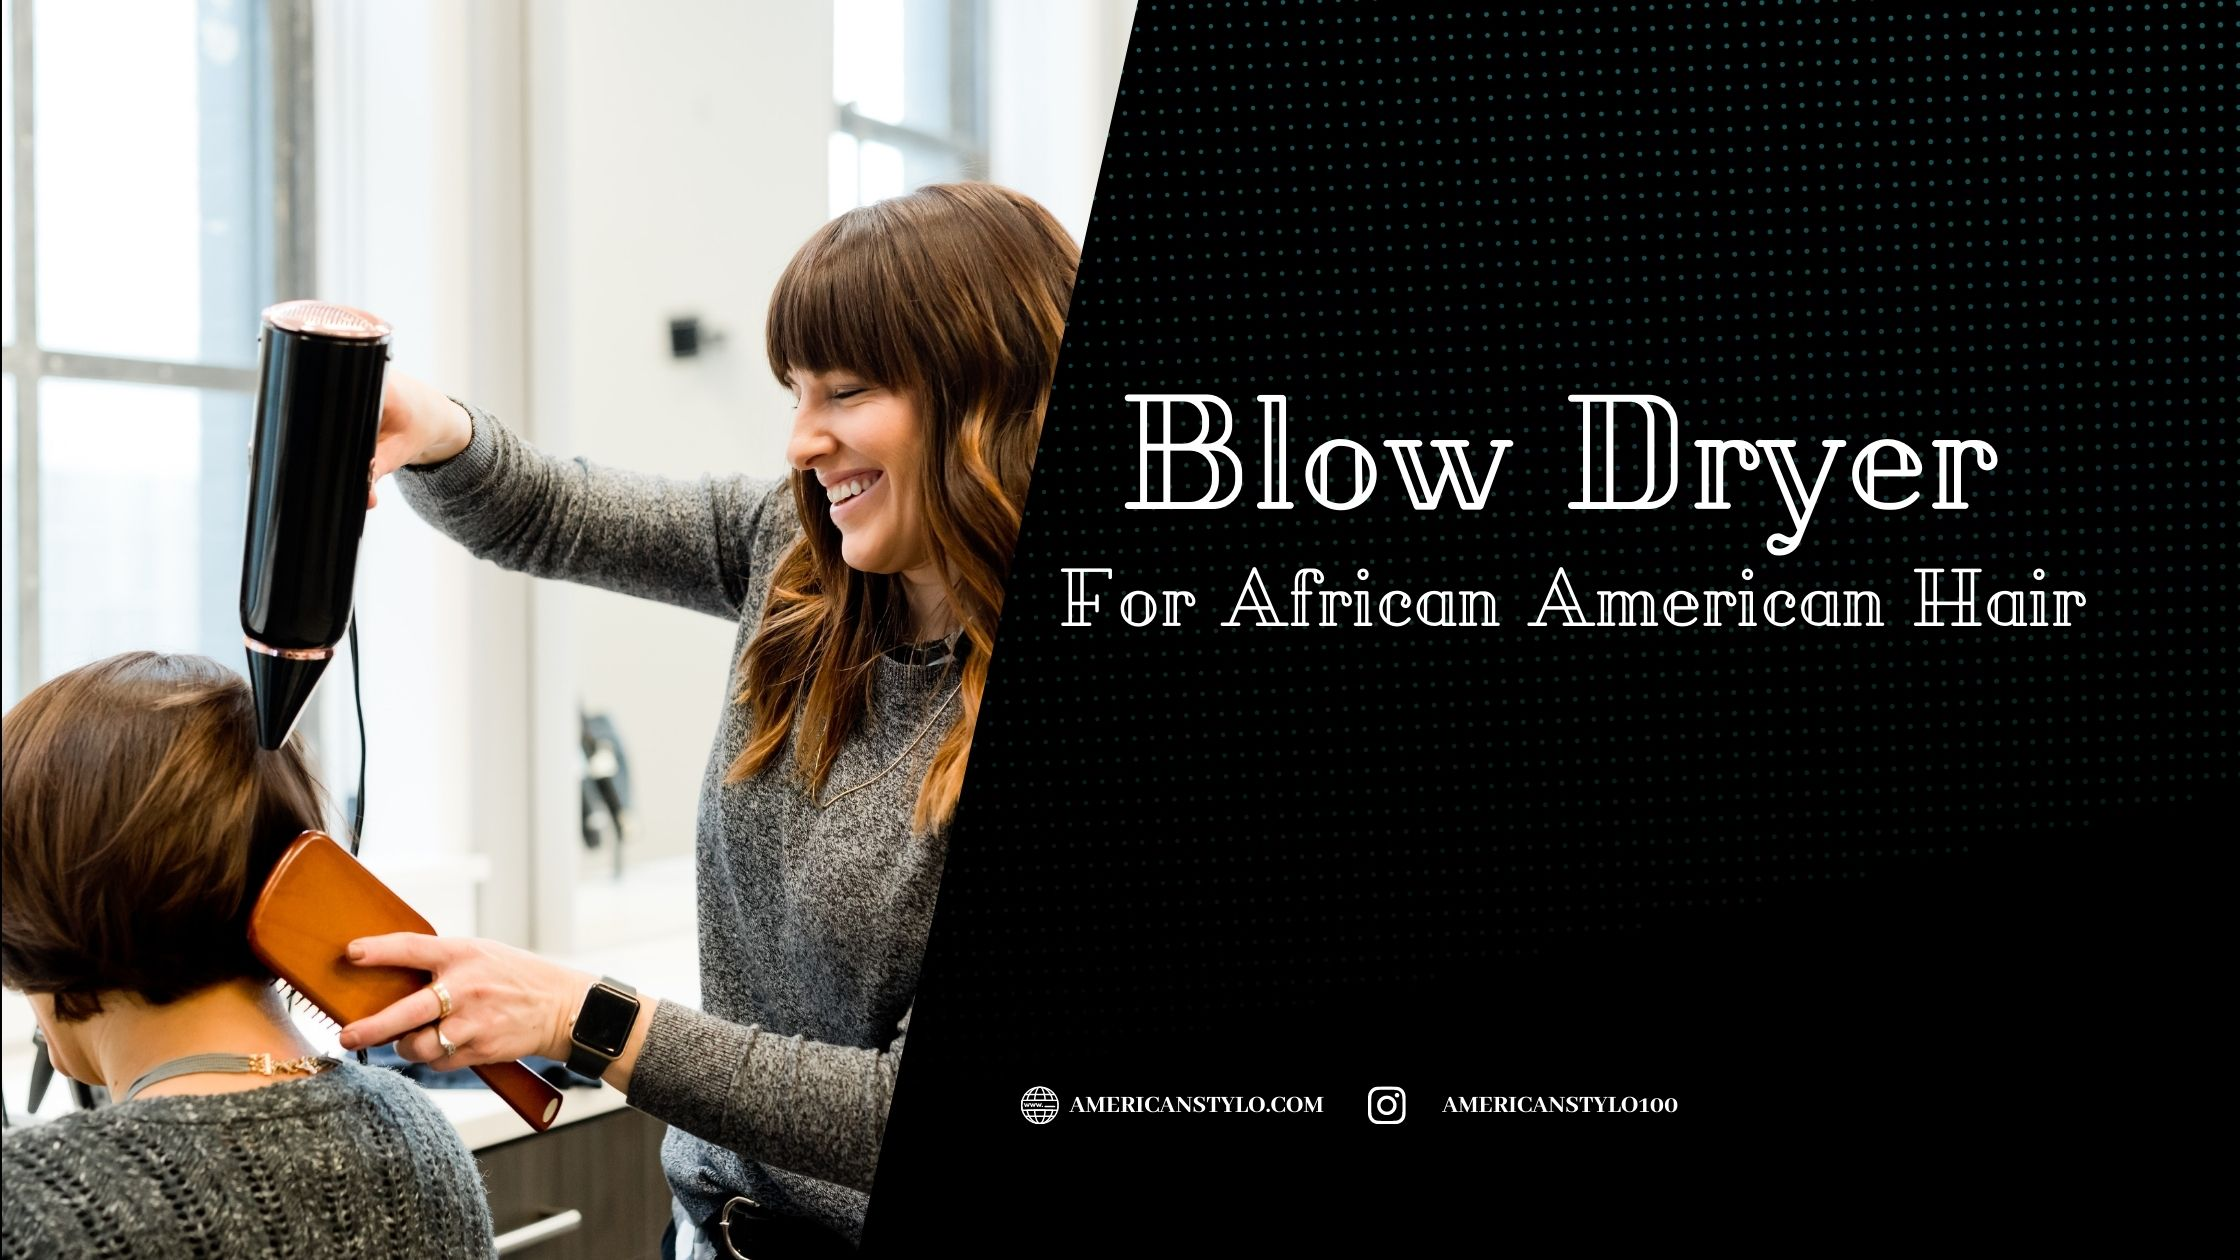 Best Blow Dryer for African American Hair